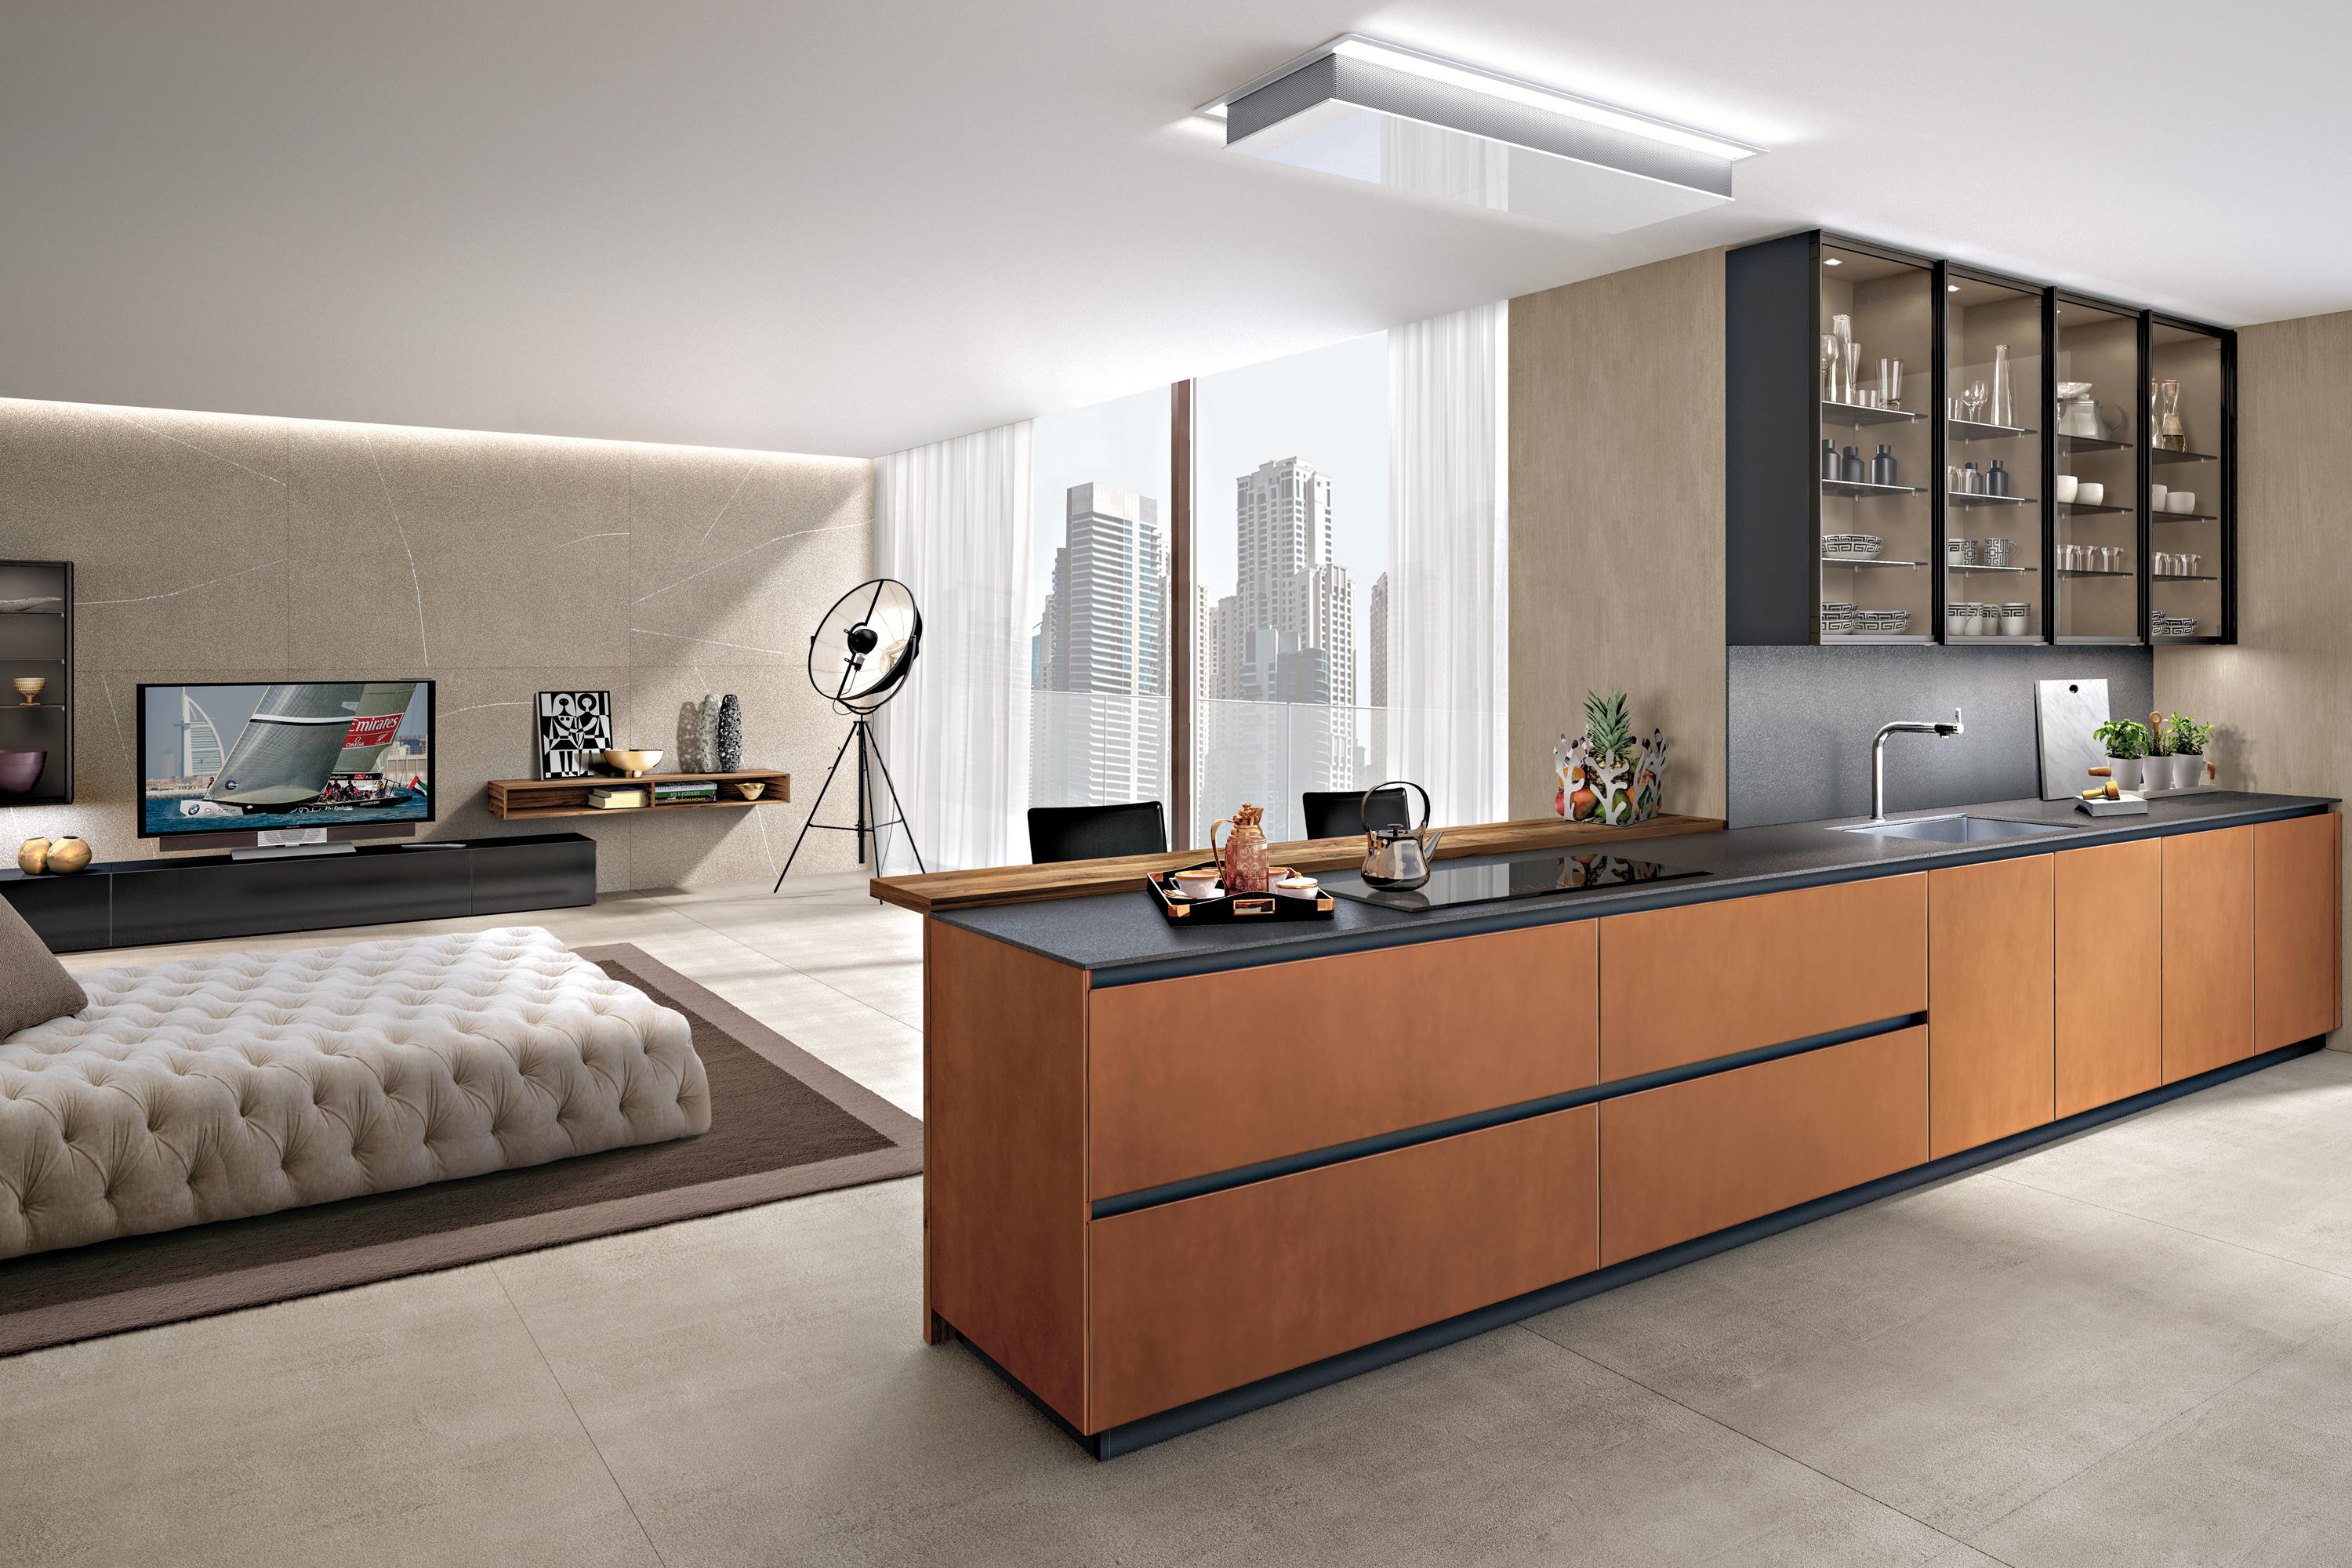 fusion antis euromobil. Antis Fusion By Euromobil | Fitted Kitchens O